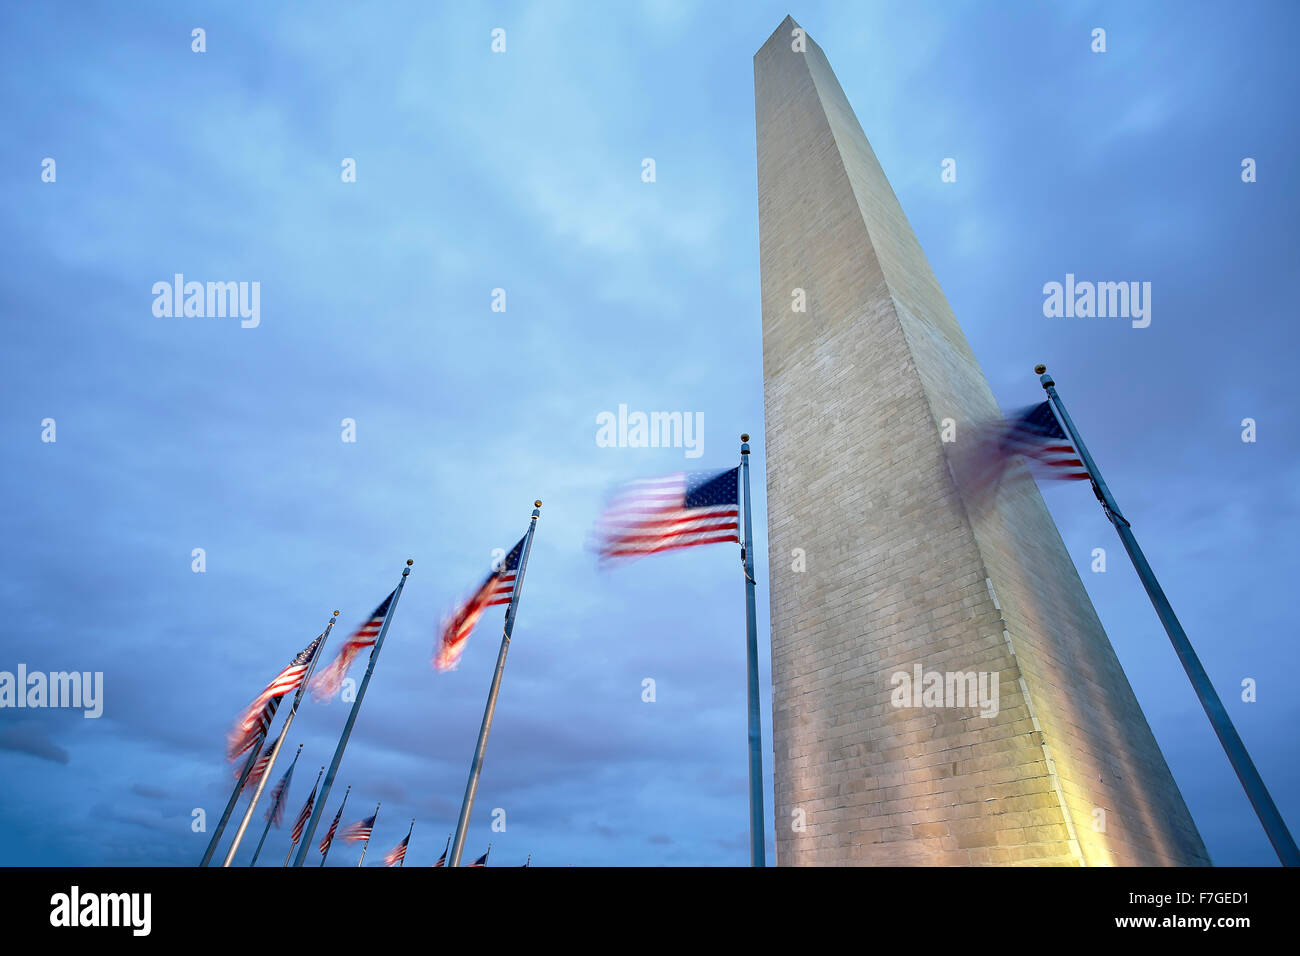 Washington Memorial und amerikanische Flaggen, Washington, District Of Columbia, USA Stockfoto